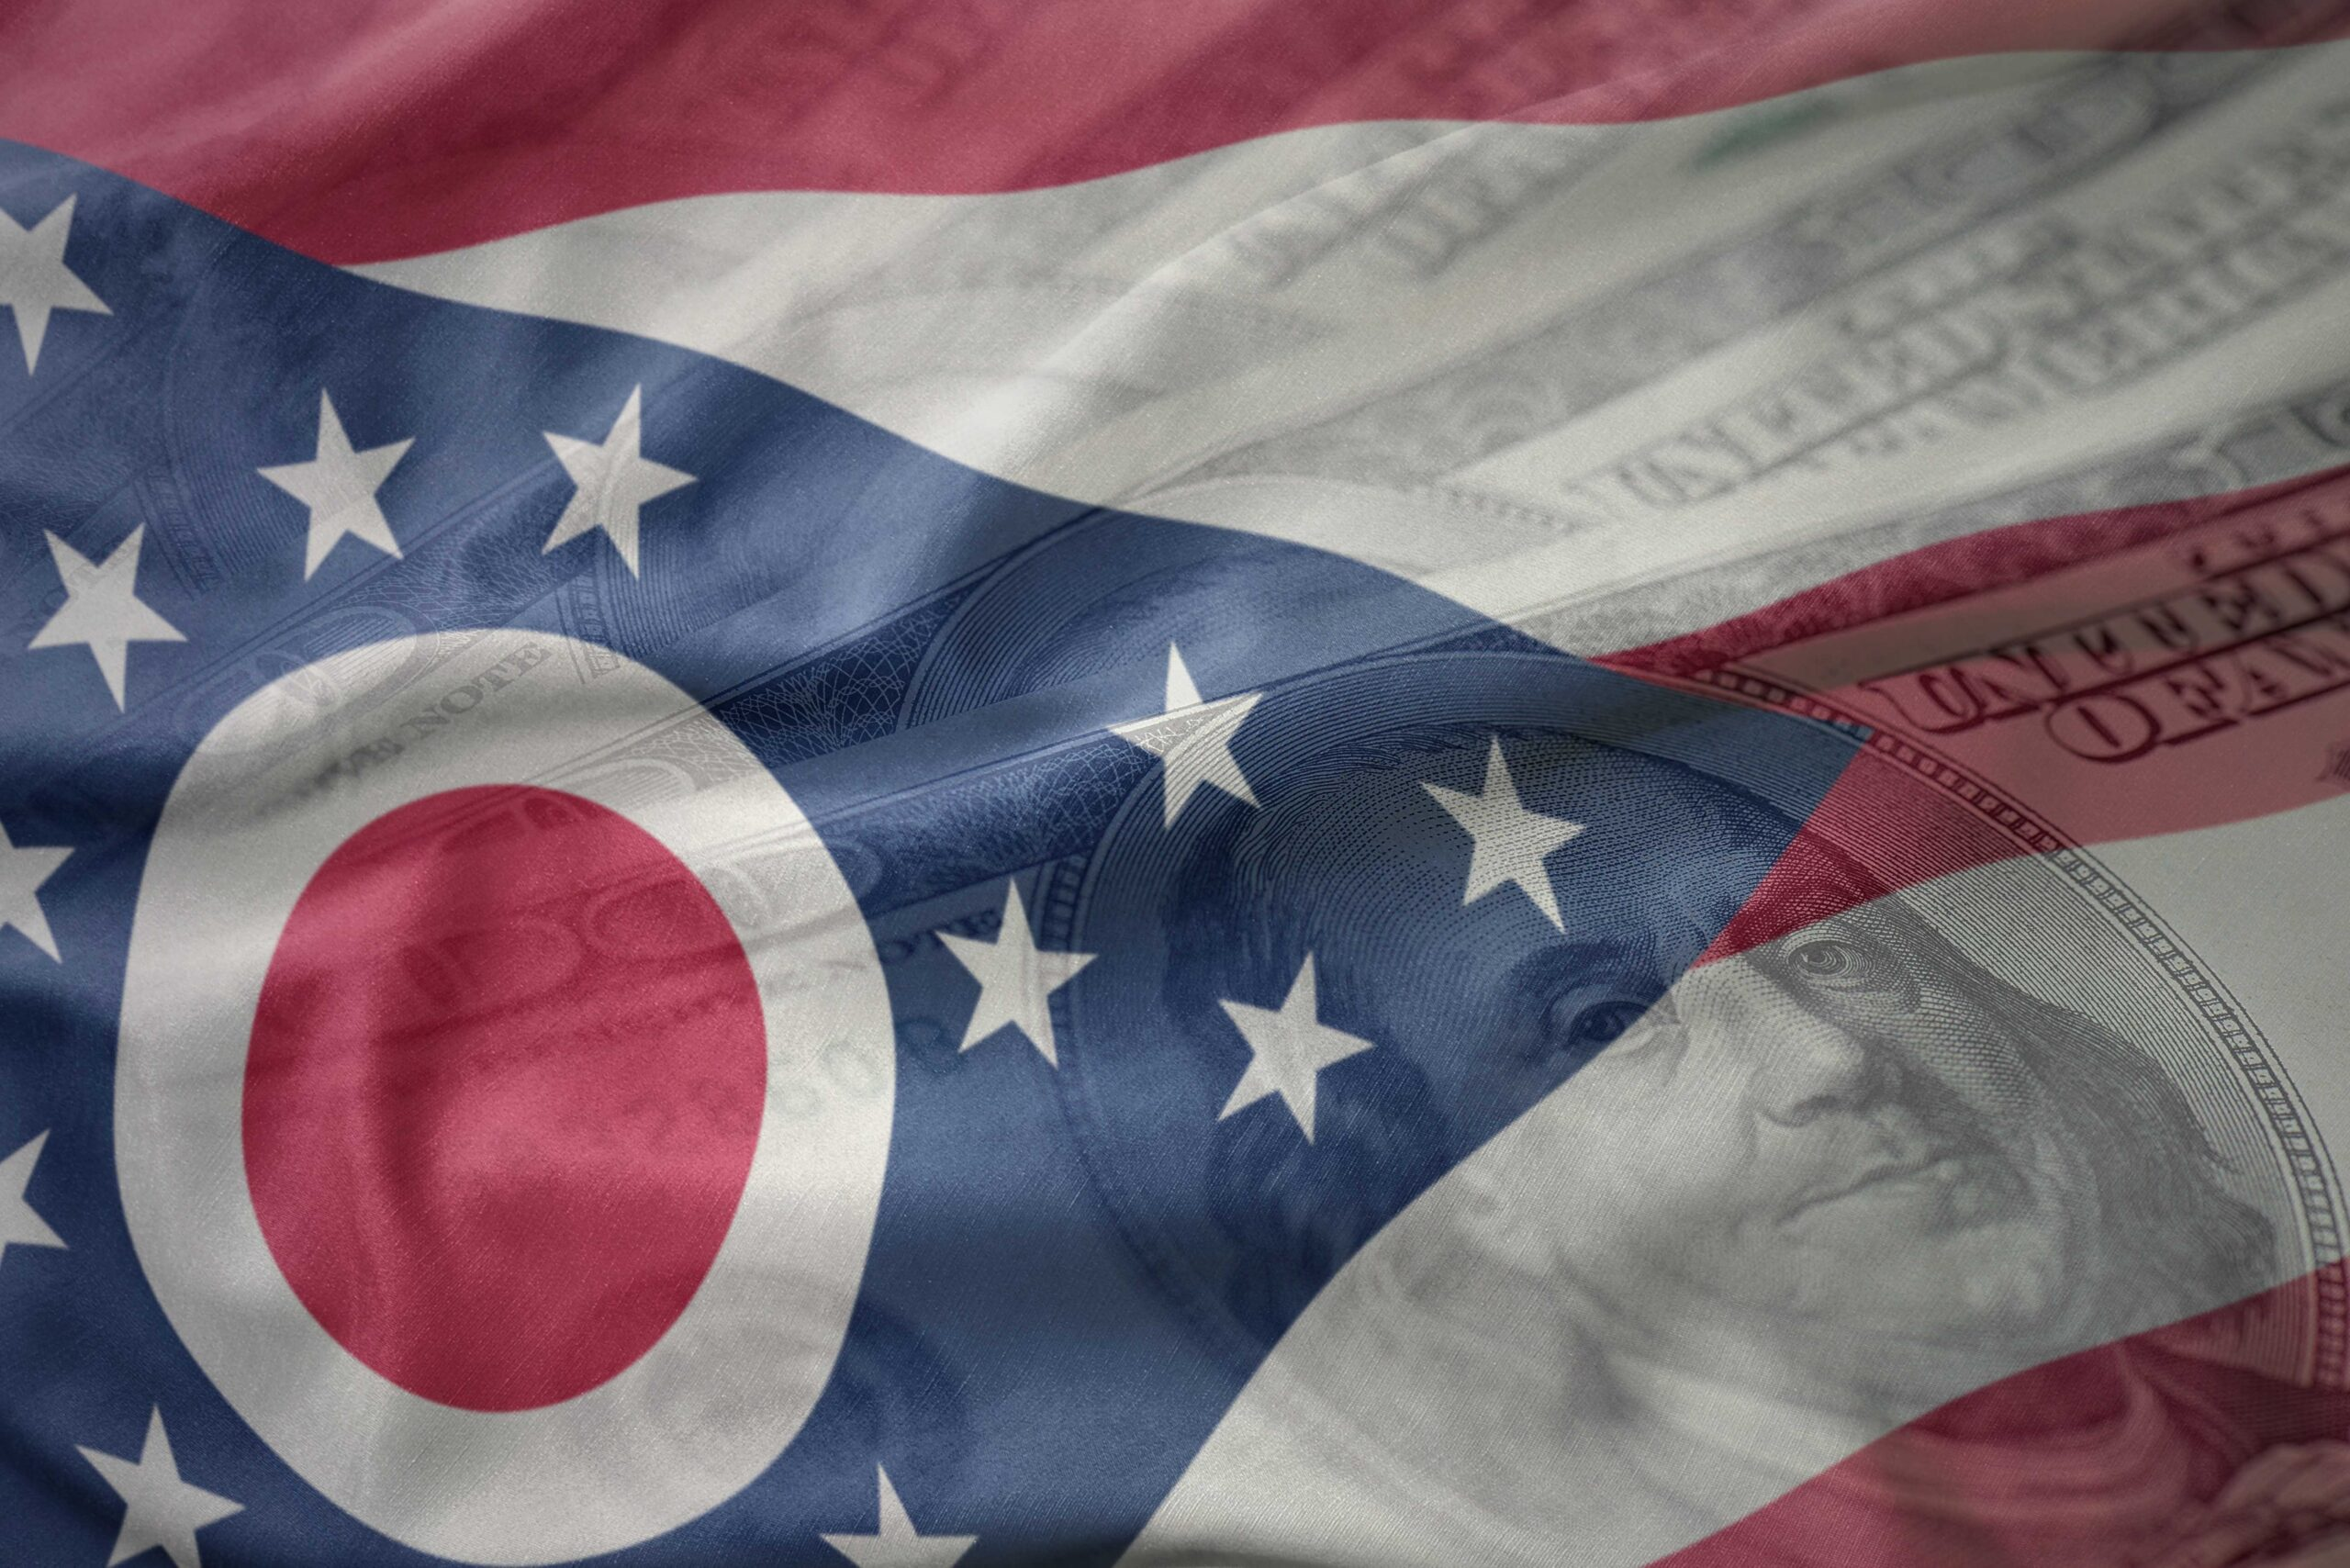 More Than 80,000 Cases of Unemployment Fraud have been identified in Ohio.